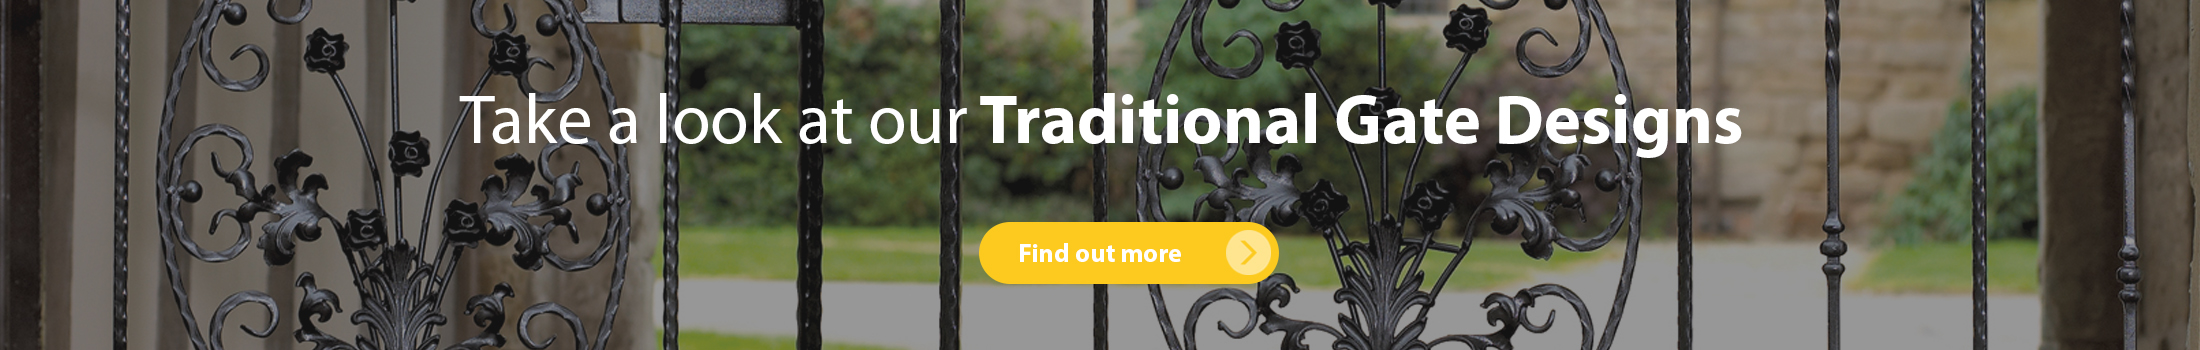 Take a look at our most popular traditional gate designs